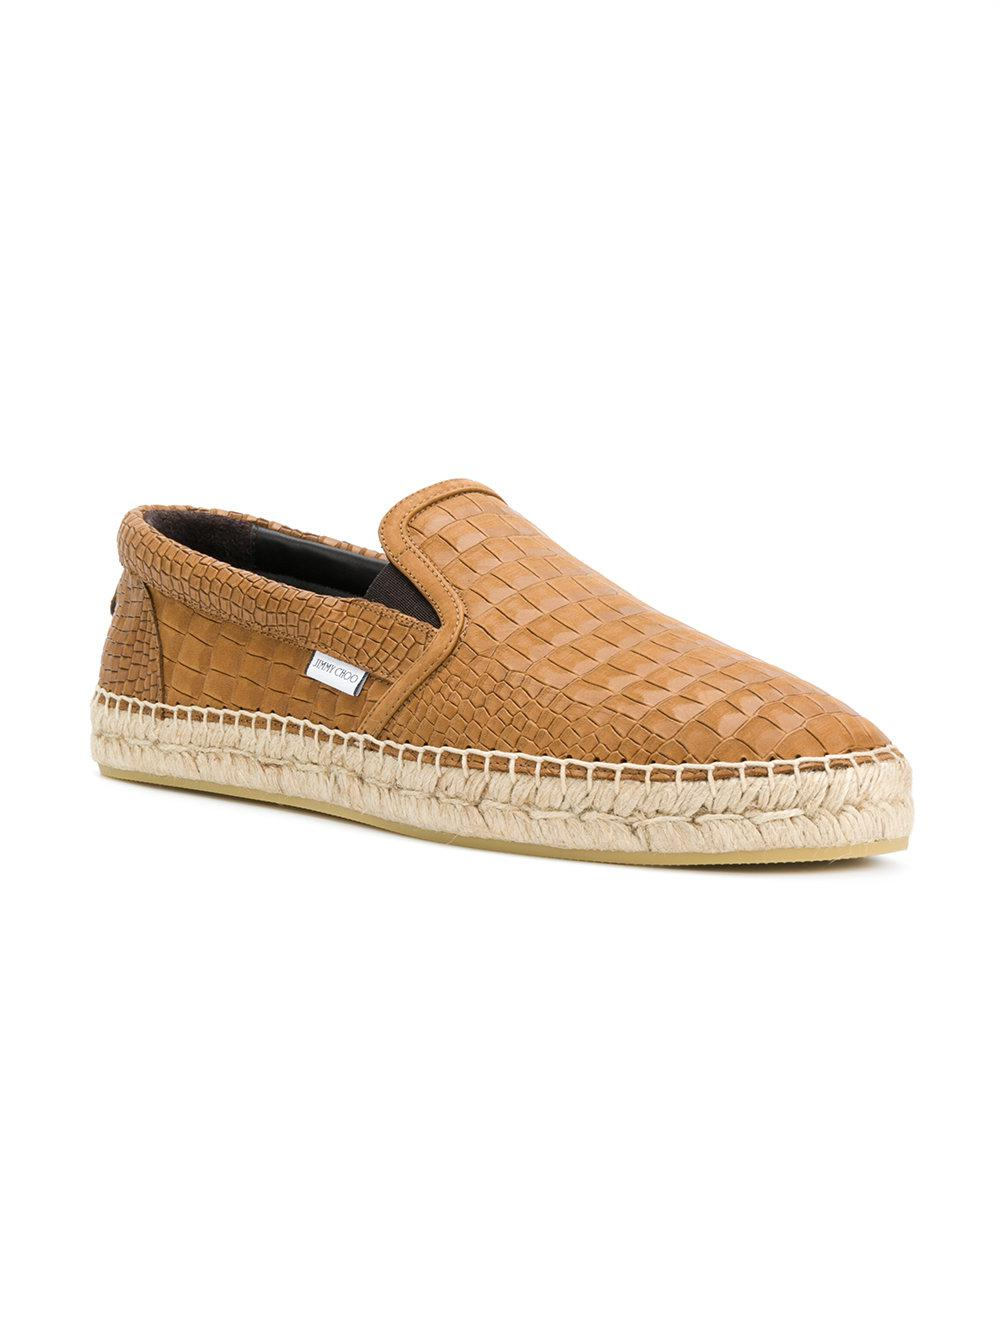 a4f49d214e25 Lyst - Jimmy Choo Vlad Crocodile Embossed Espadrilles in Brown for Men